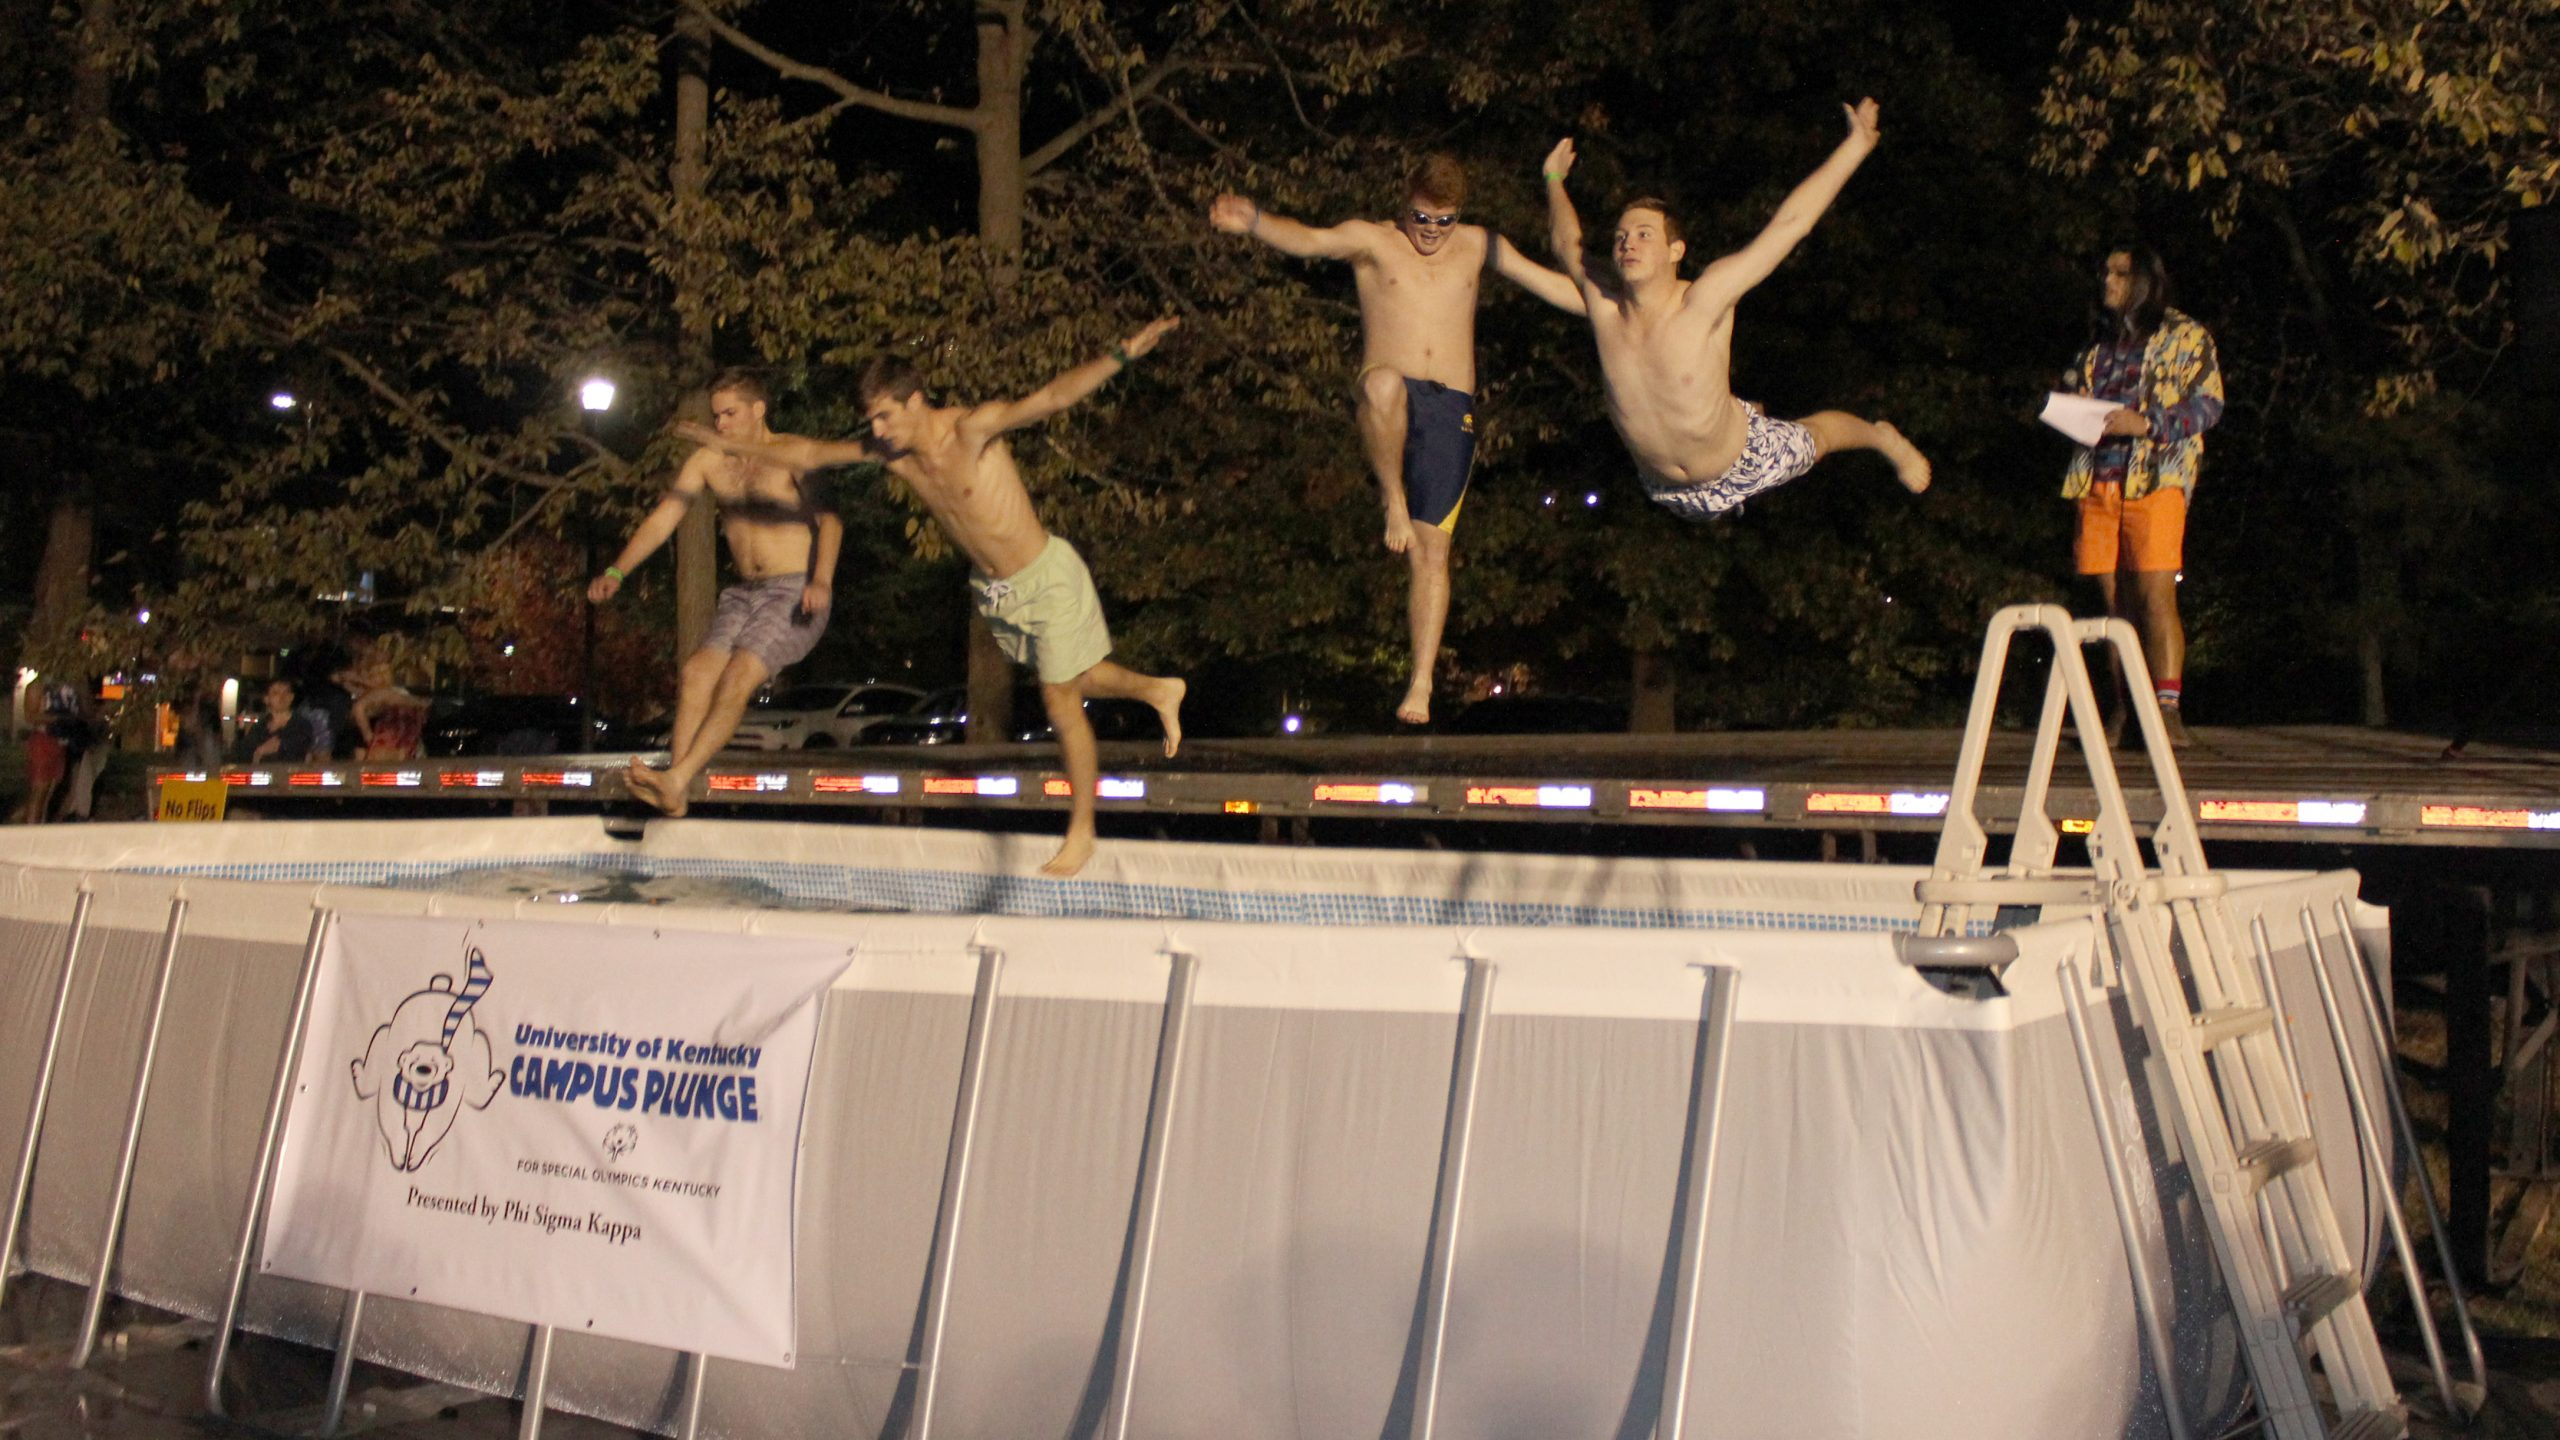 Students jump into a pool to take the Polar Plunge for Special Olympics on the University of Kentucky campus.